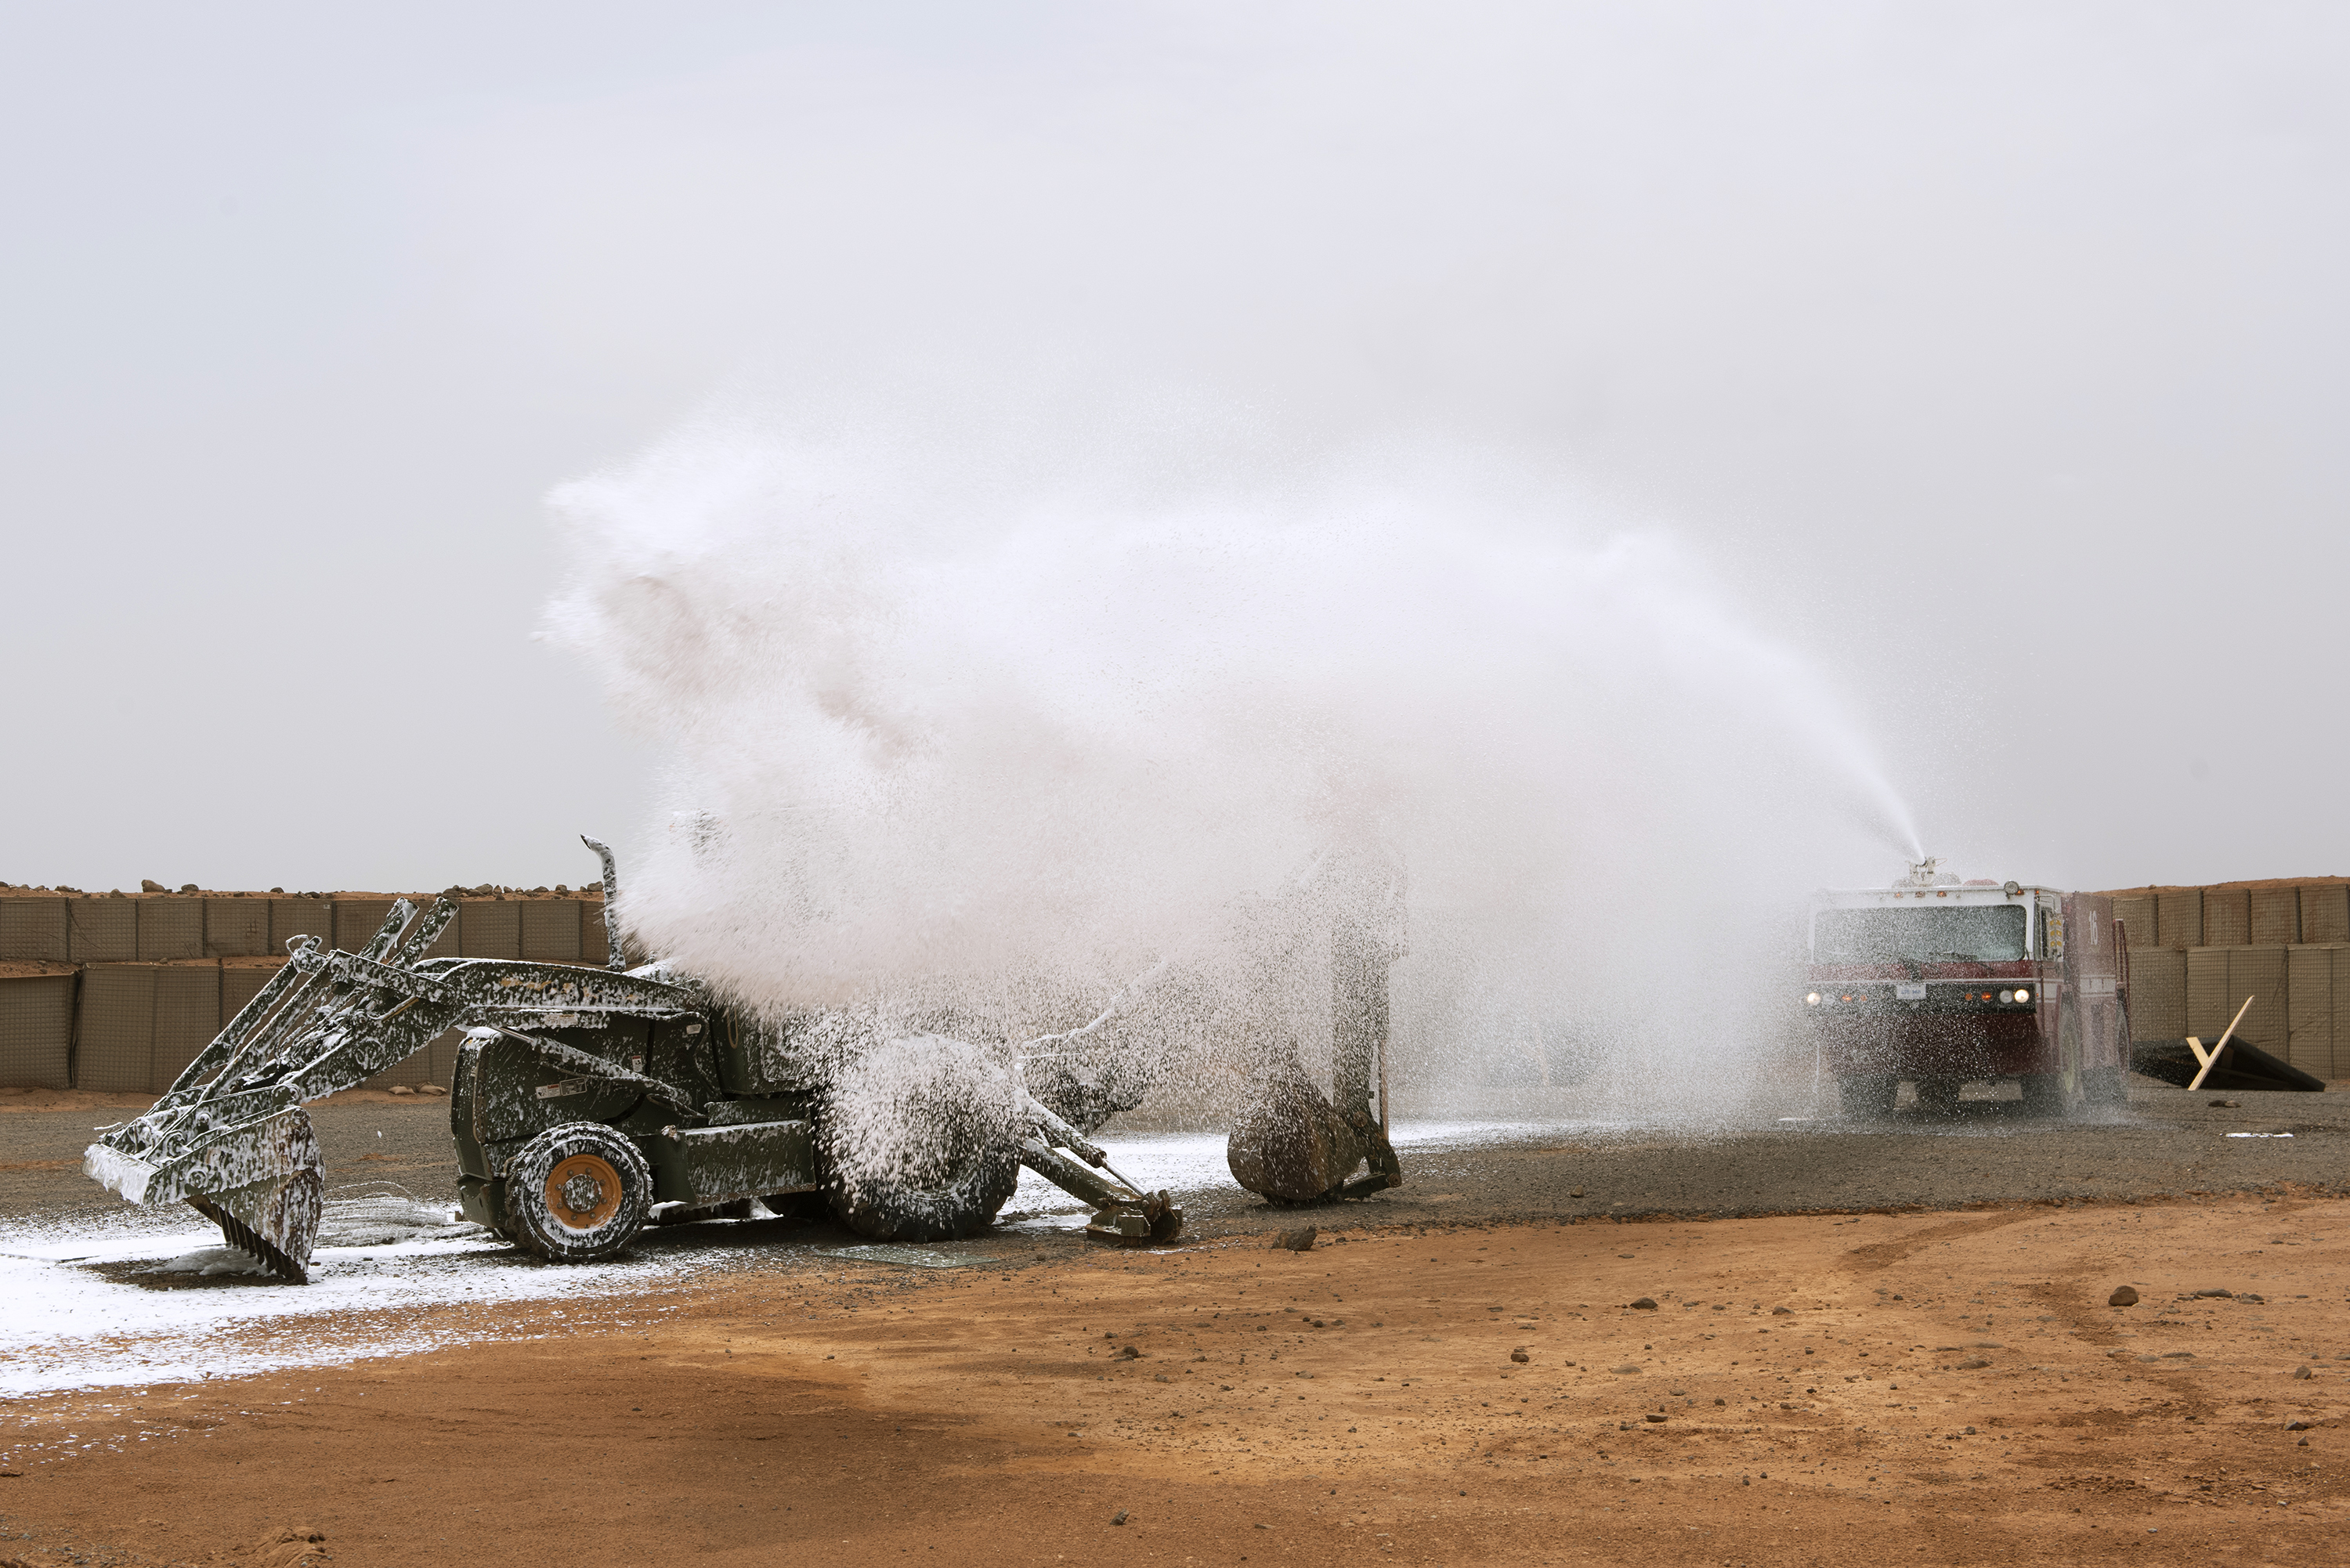 U.S. Air Force firefighters with the 449th Air Expeditionary Group and Combined Joint Task Force Horn of Africa use a P-19B fire truck to fight a simulated fire during training, outside Djibouti City, Djibouti, Aug. 20, 2018. The Airmen continually perform scenario based training tasks in order to maintain their skills. (U.S. Air National Guard photo by Master Sgt. Sarah Mattison)